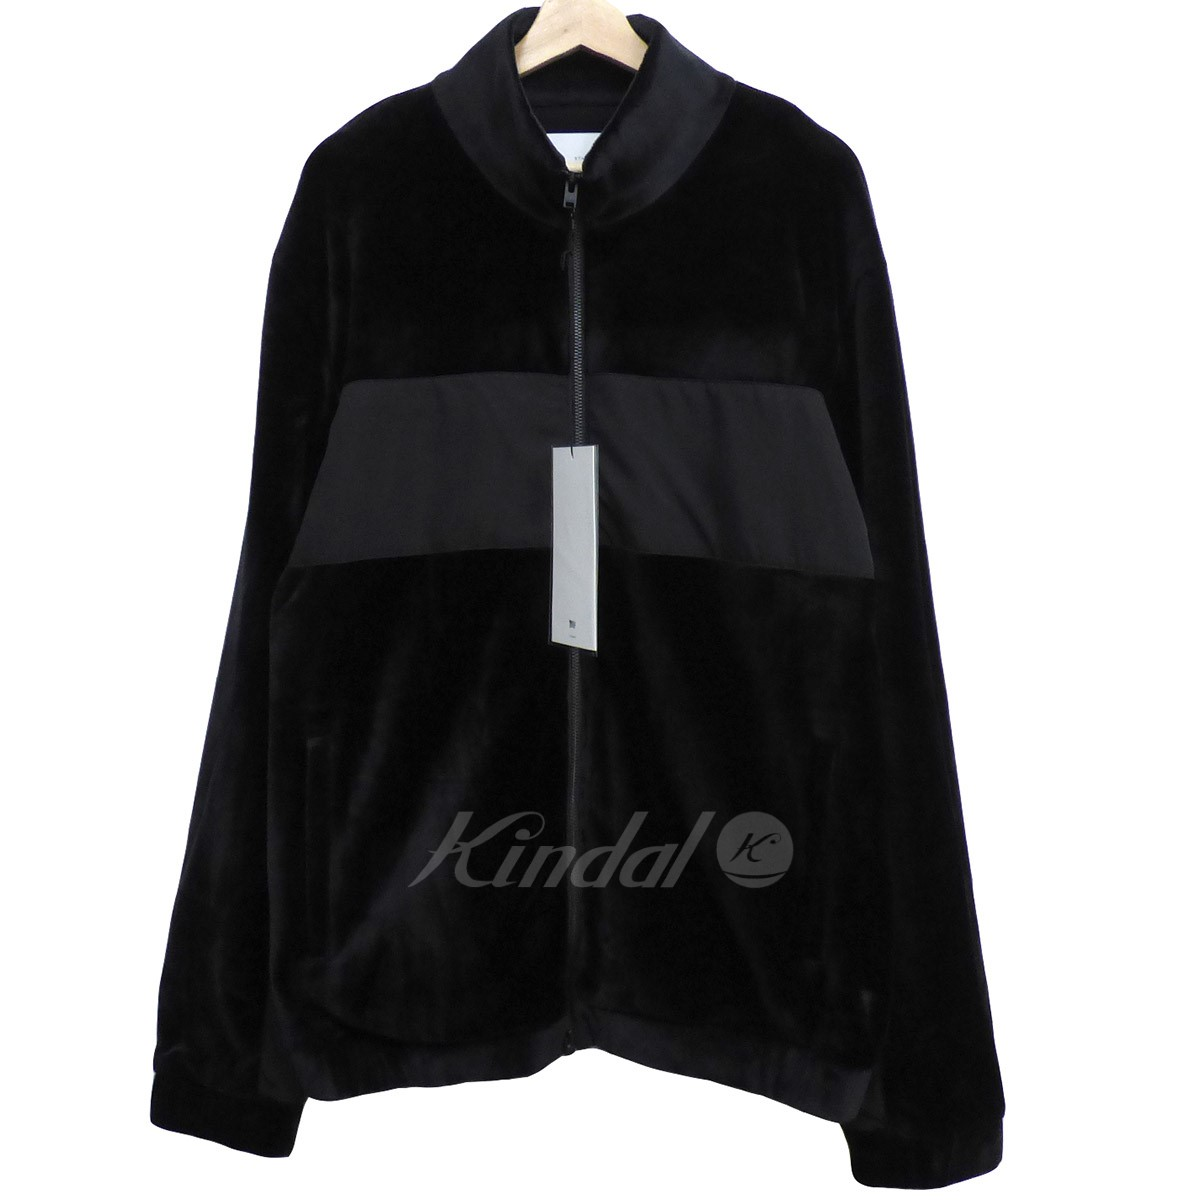 【中古】STAMPD 18SS HEADLAND TRACK SUIT JACKET 【送料無料】 【001358】 【KIND1550】